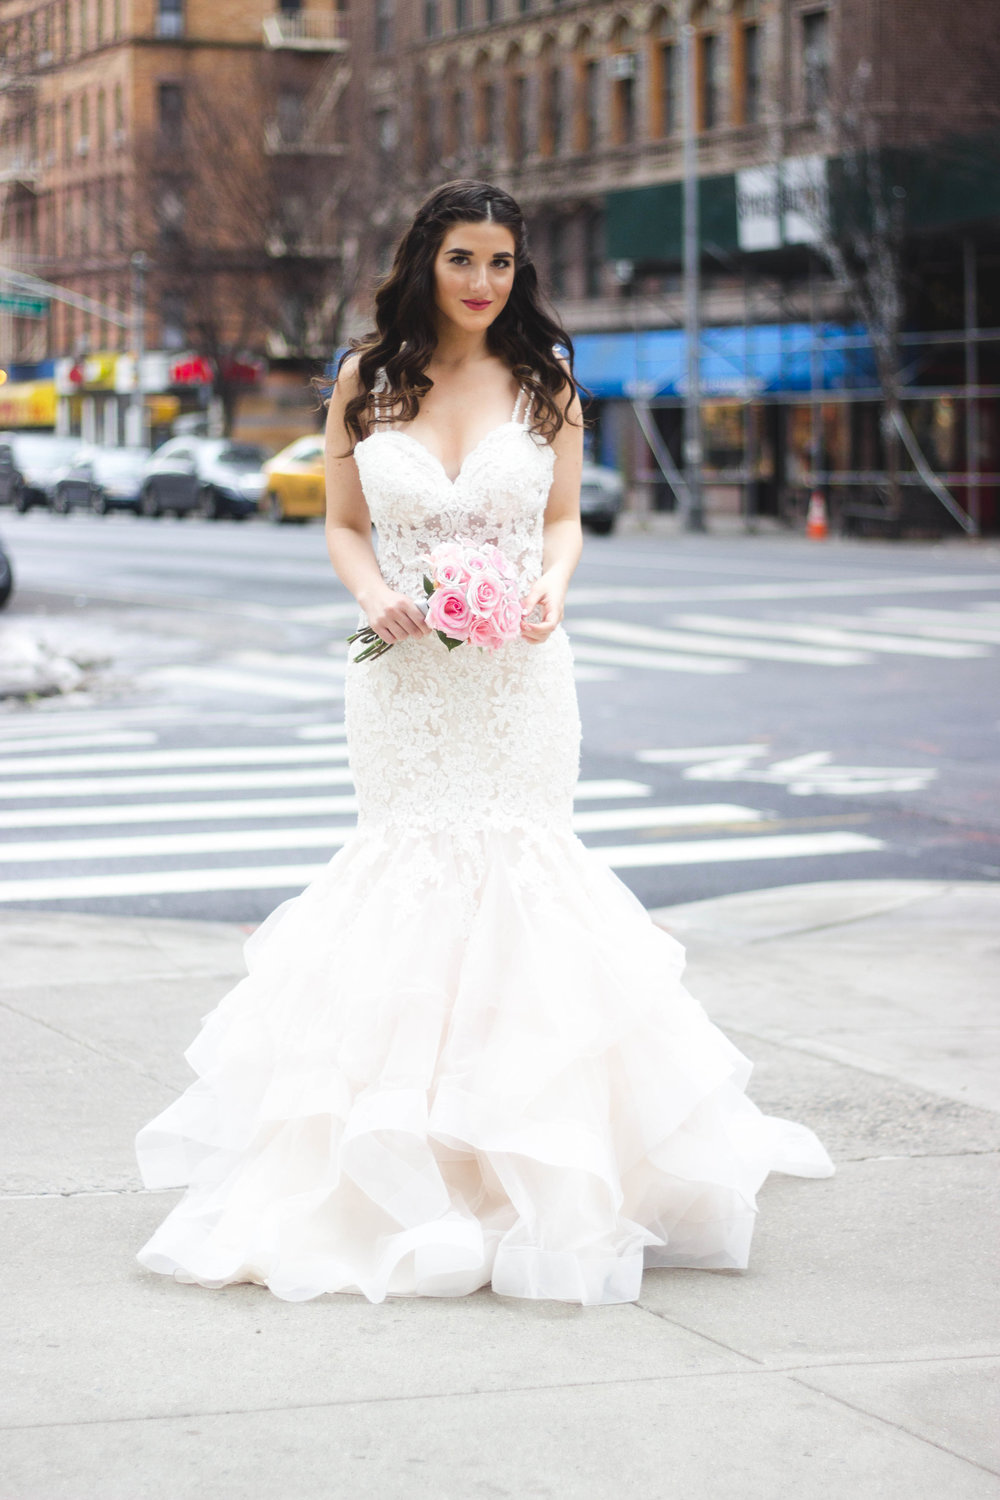 Playing Dress Up With Morilee Bridal Esther Santer Fashion Blog NYC Street Style Blogger Outfit OOTD Trendy Wedding Dress Gown White Dreamy Modern Timeless Beautiful Train Pink Flowers Bouquet Hair Hairstyle Beauty  Makeup Lace Mermaid Trumpet Flare.jpg